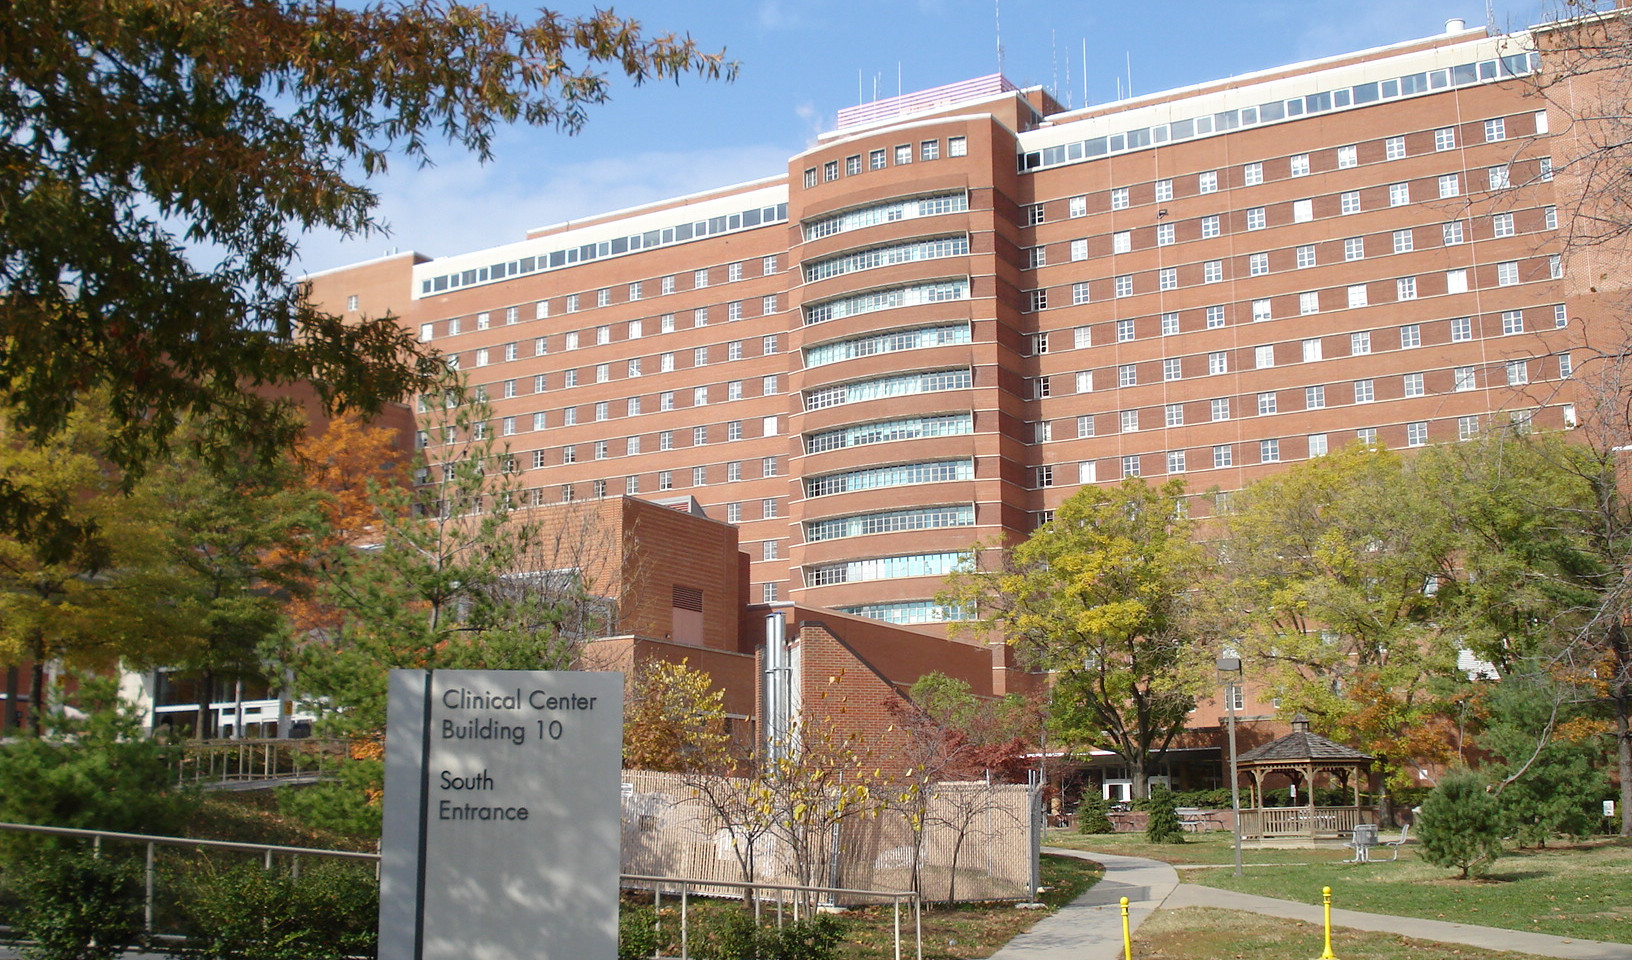 National Institute of Health, Building 10 - Bethesda, MD